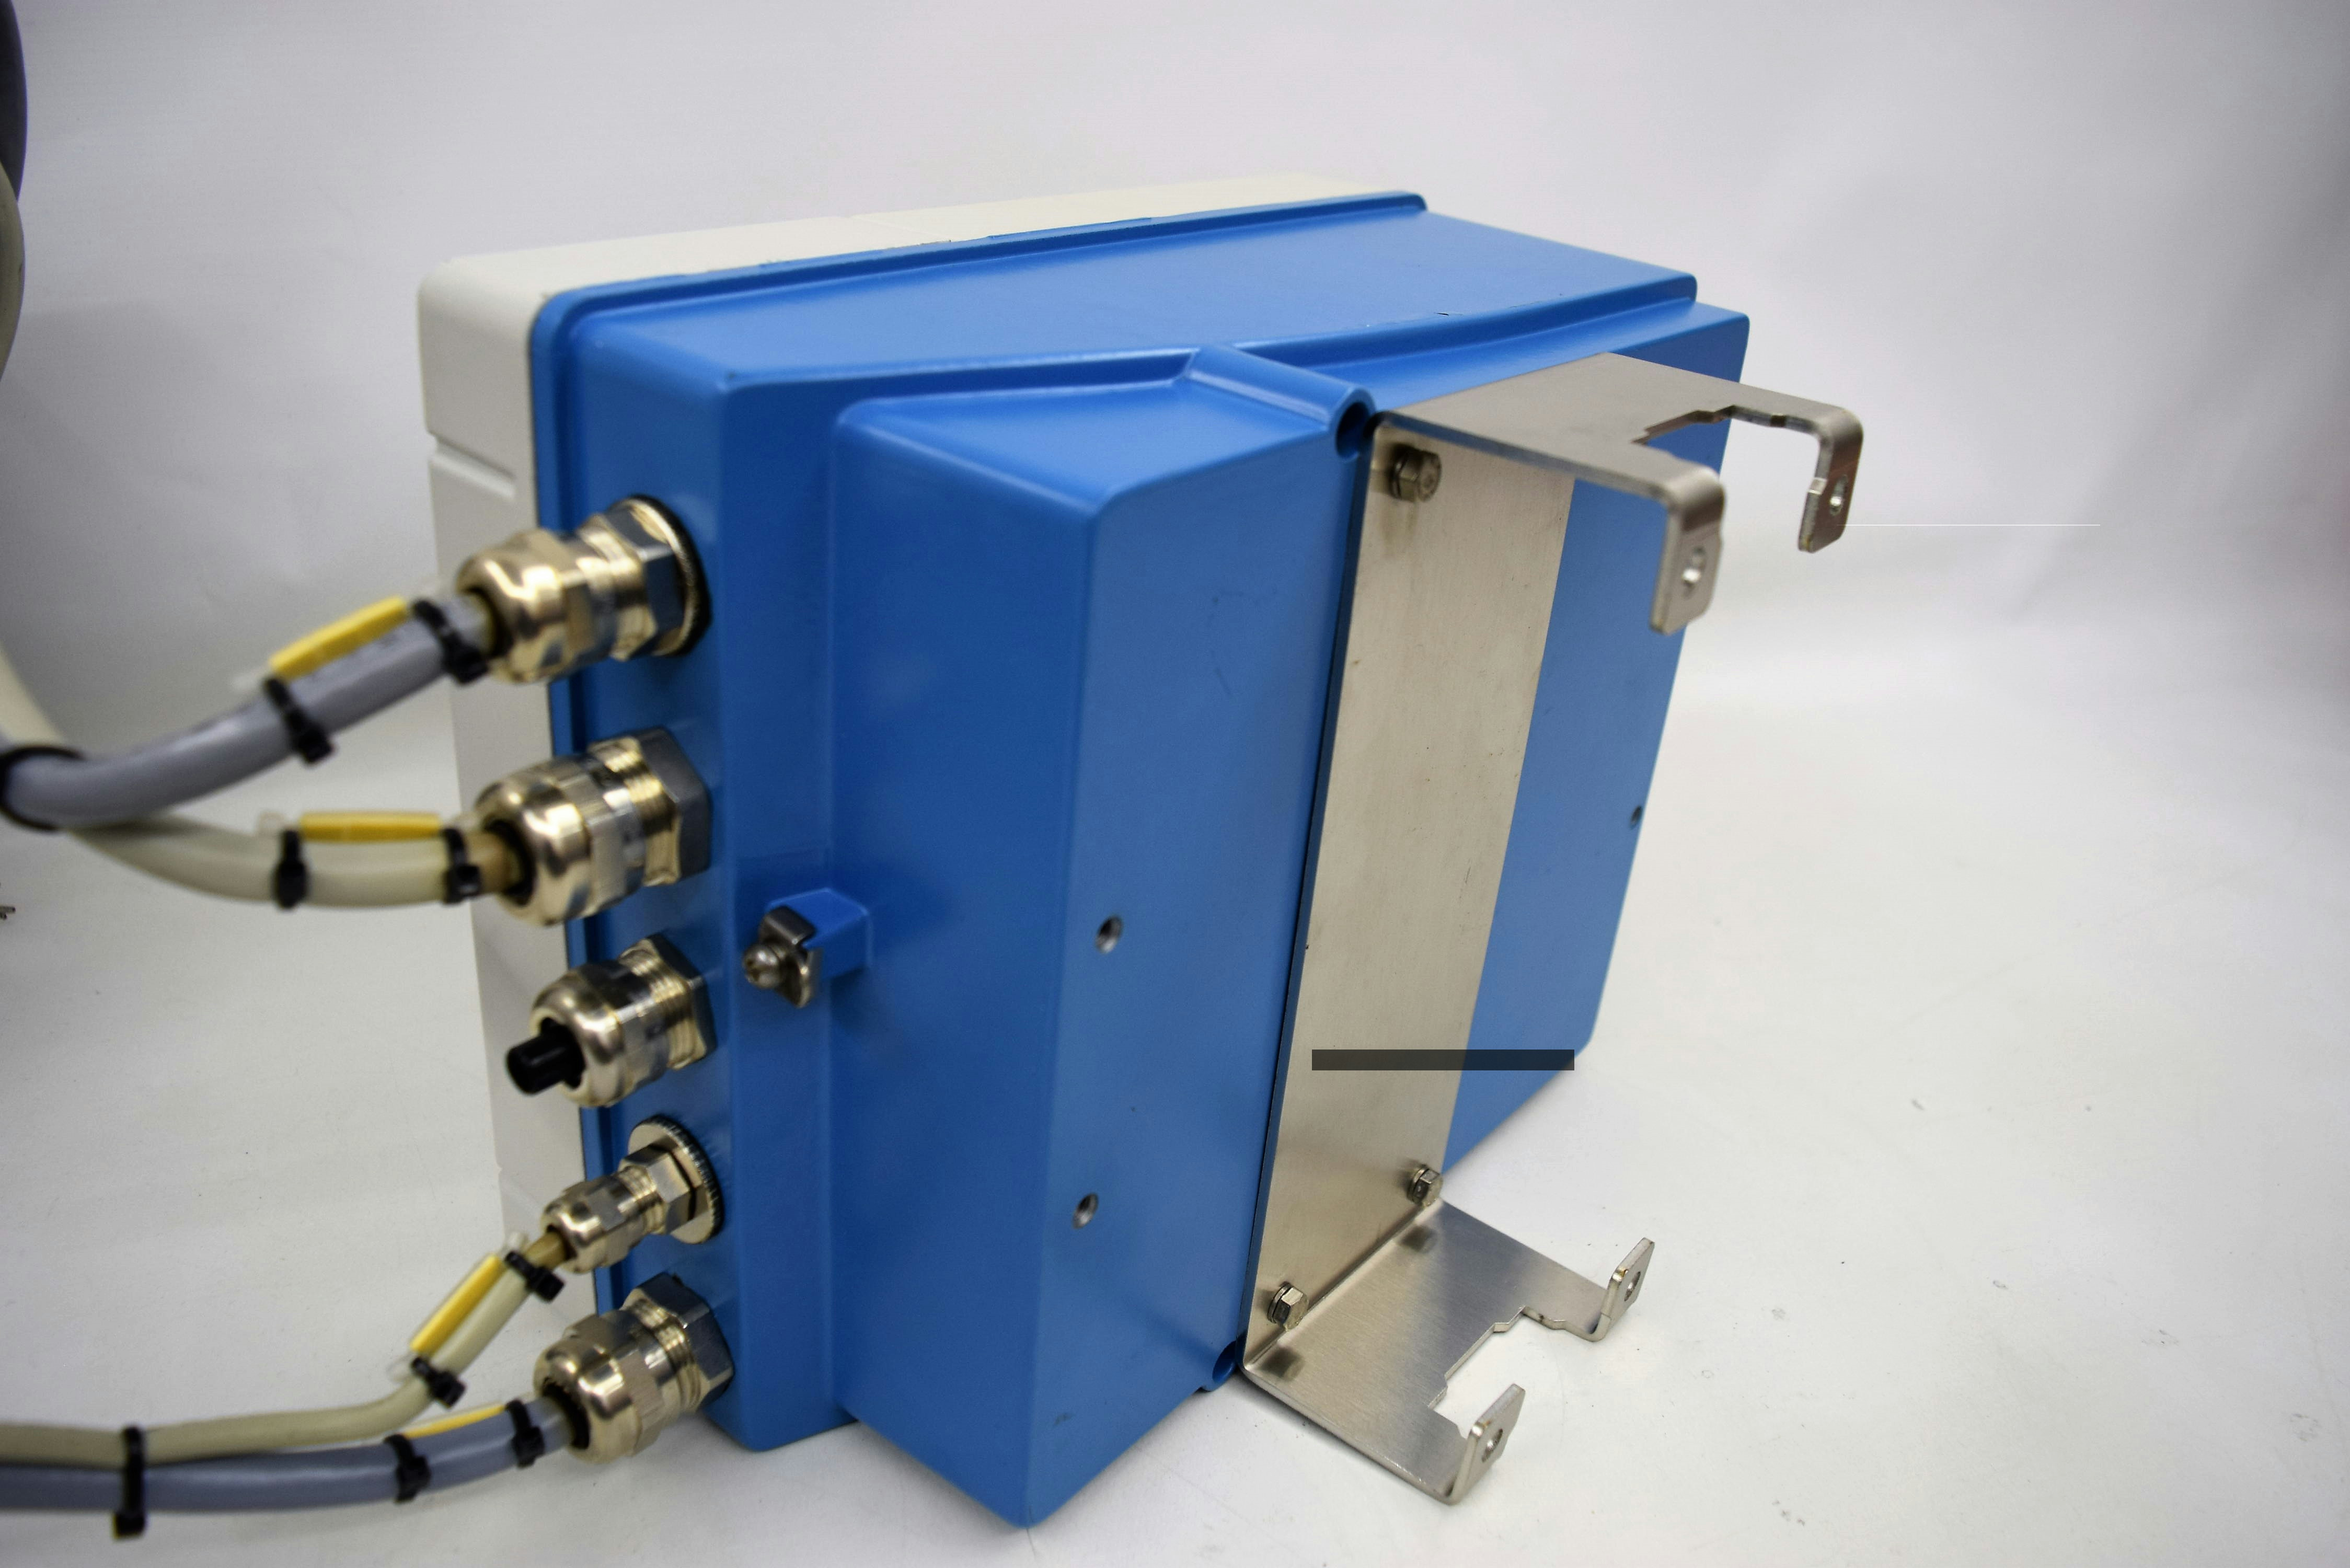 Details about Endress & Hauser Promag 53, 53H04-9F0B9AC2ABAA Transmitter  Amersham BioProcess